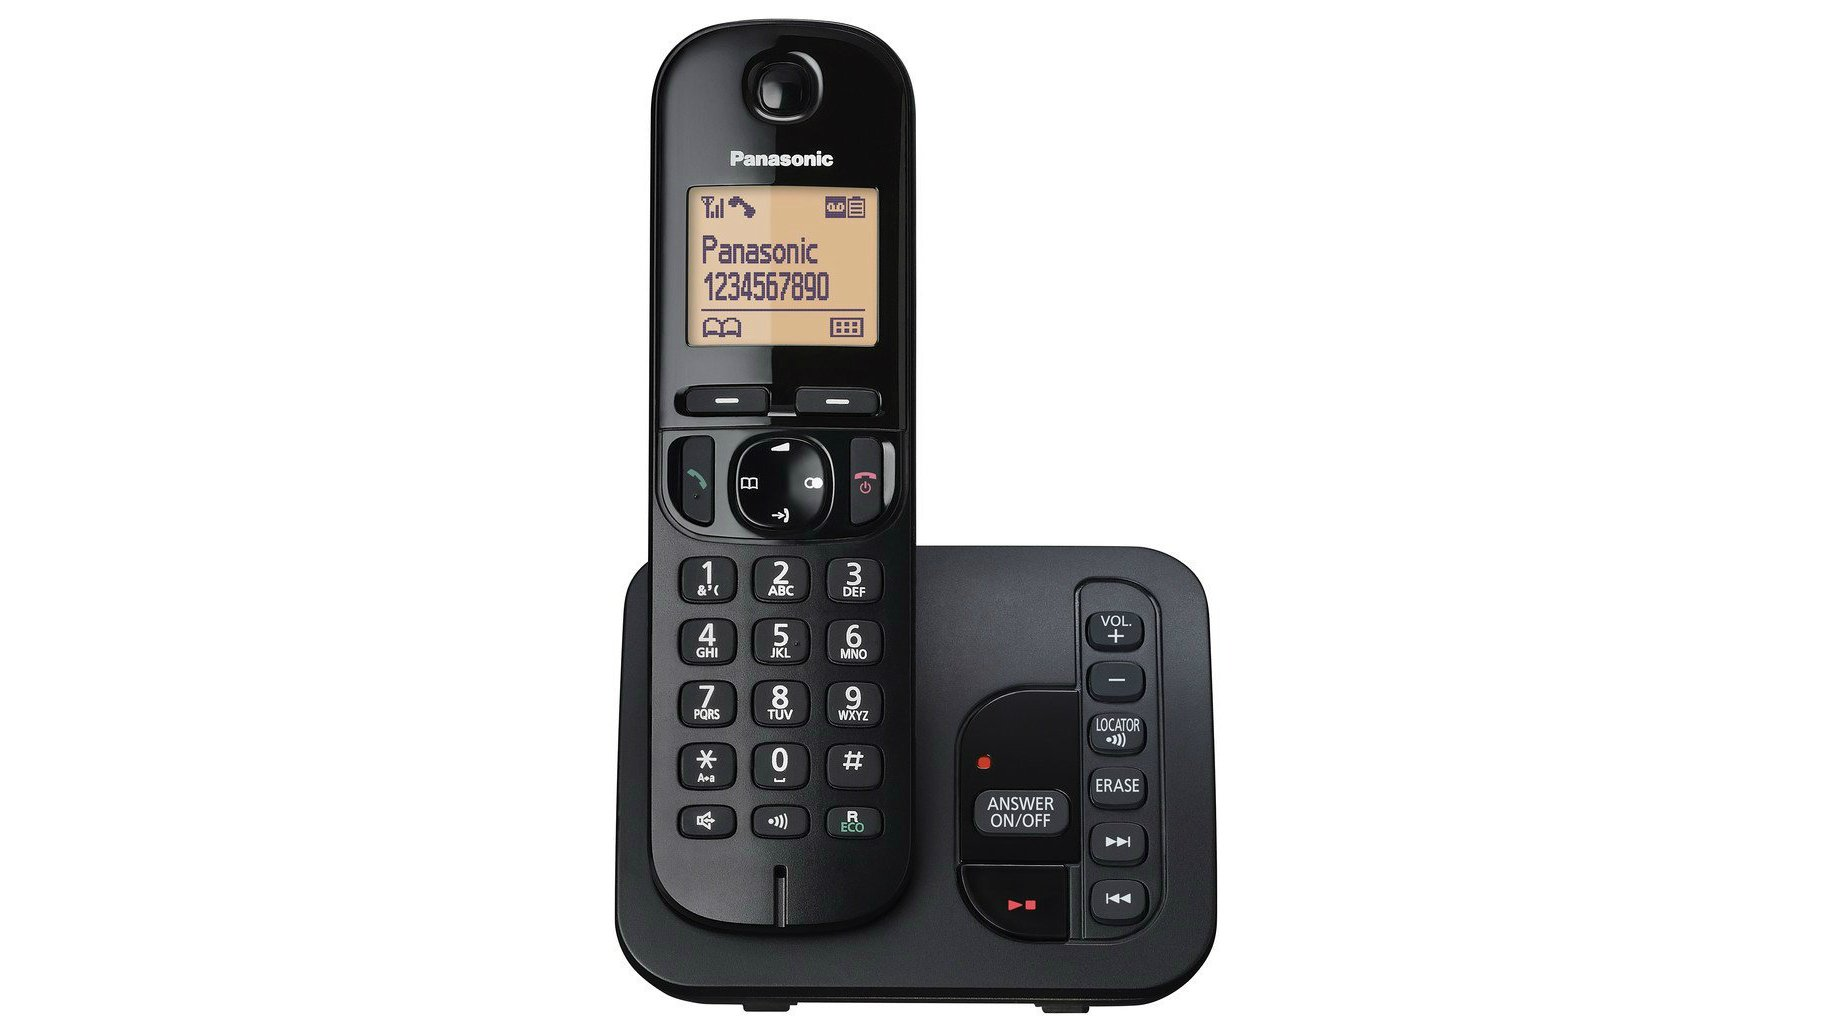 Best cordless phone 2019: Find the perfect landline phone